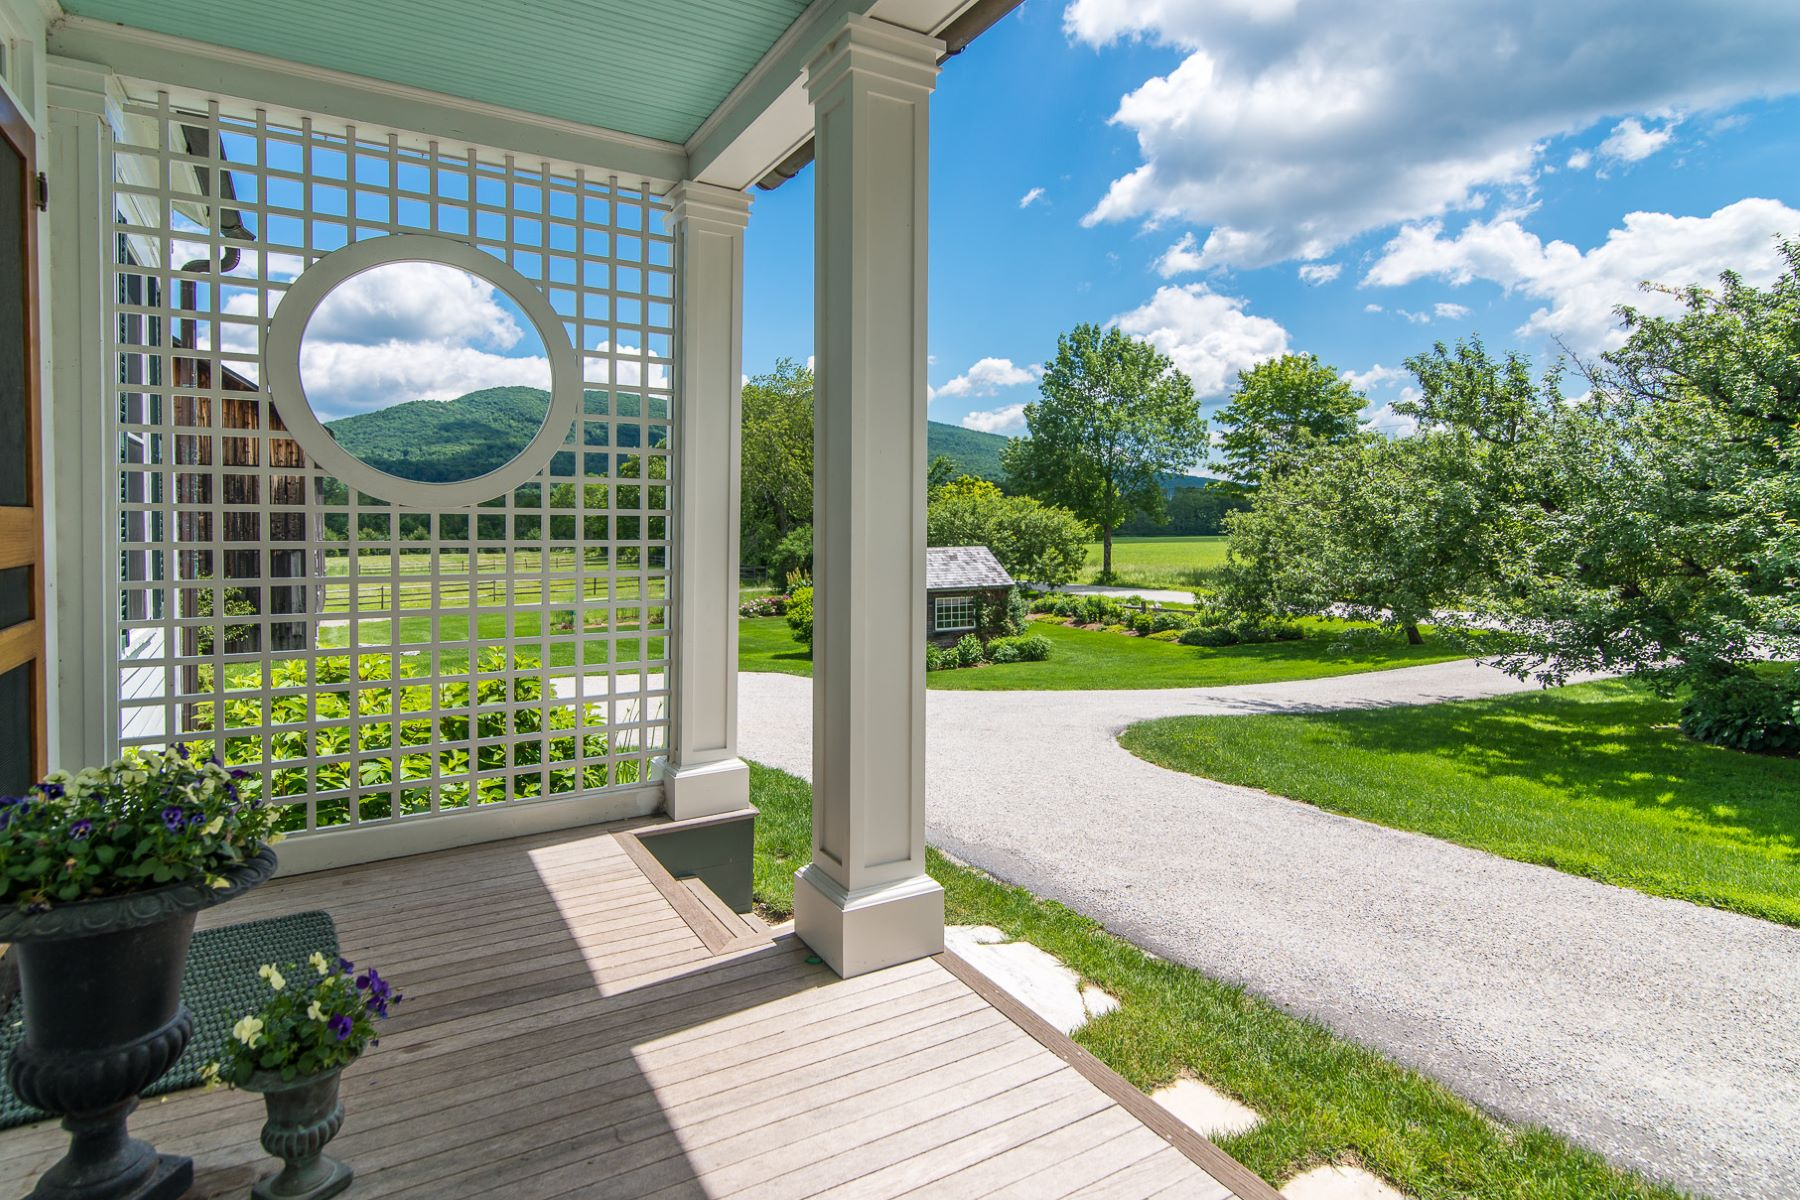 single family homes for Sale at Authentic Restored Farmhouse 2046 Dorset West Rd Dorset, Vermont 05251 United States